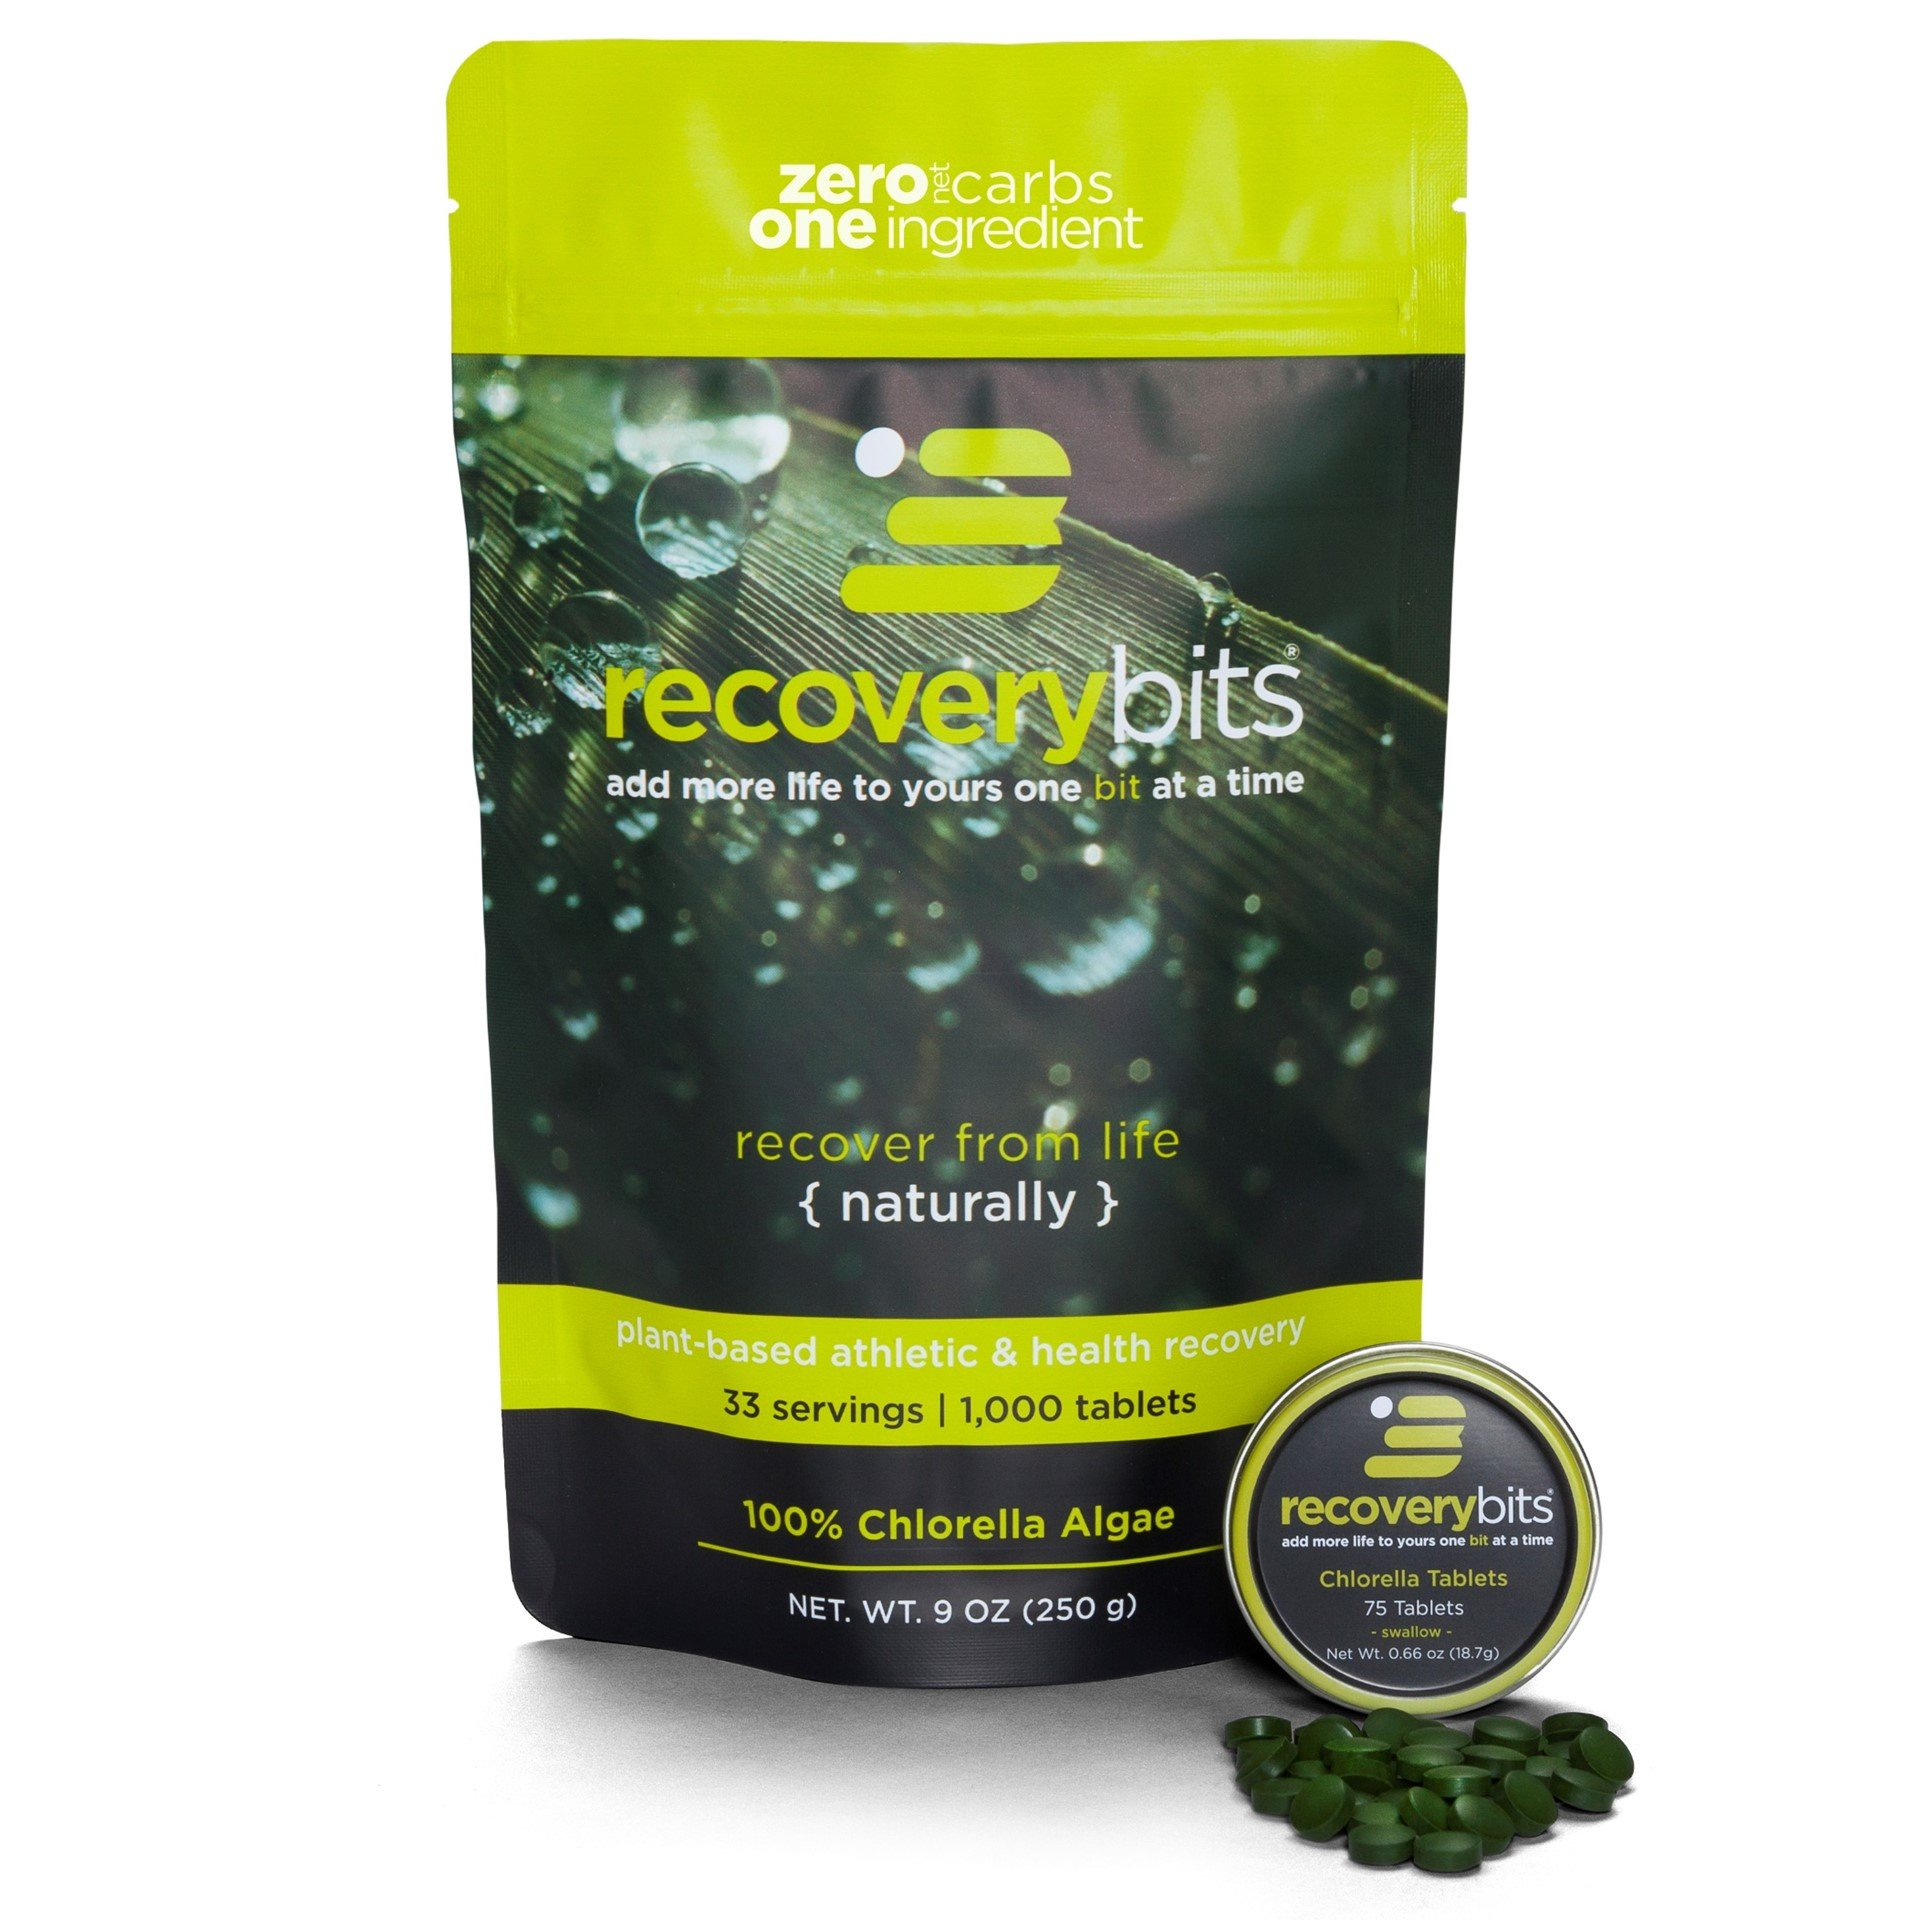 RECOVERYbits Pure Chlorella Tablets - Bag of 1,000 Tablets (250mg per Tablet) - Cracked Cell Wall, Non-GMO, Non-Irradiated, Raw, Green Algae - Keto, Vegan Friendly by ENERGYBITS